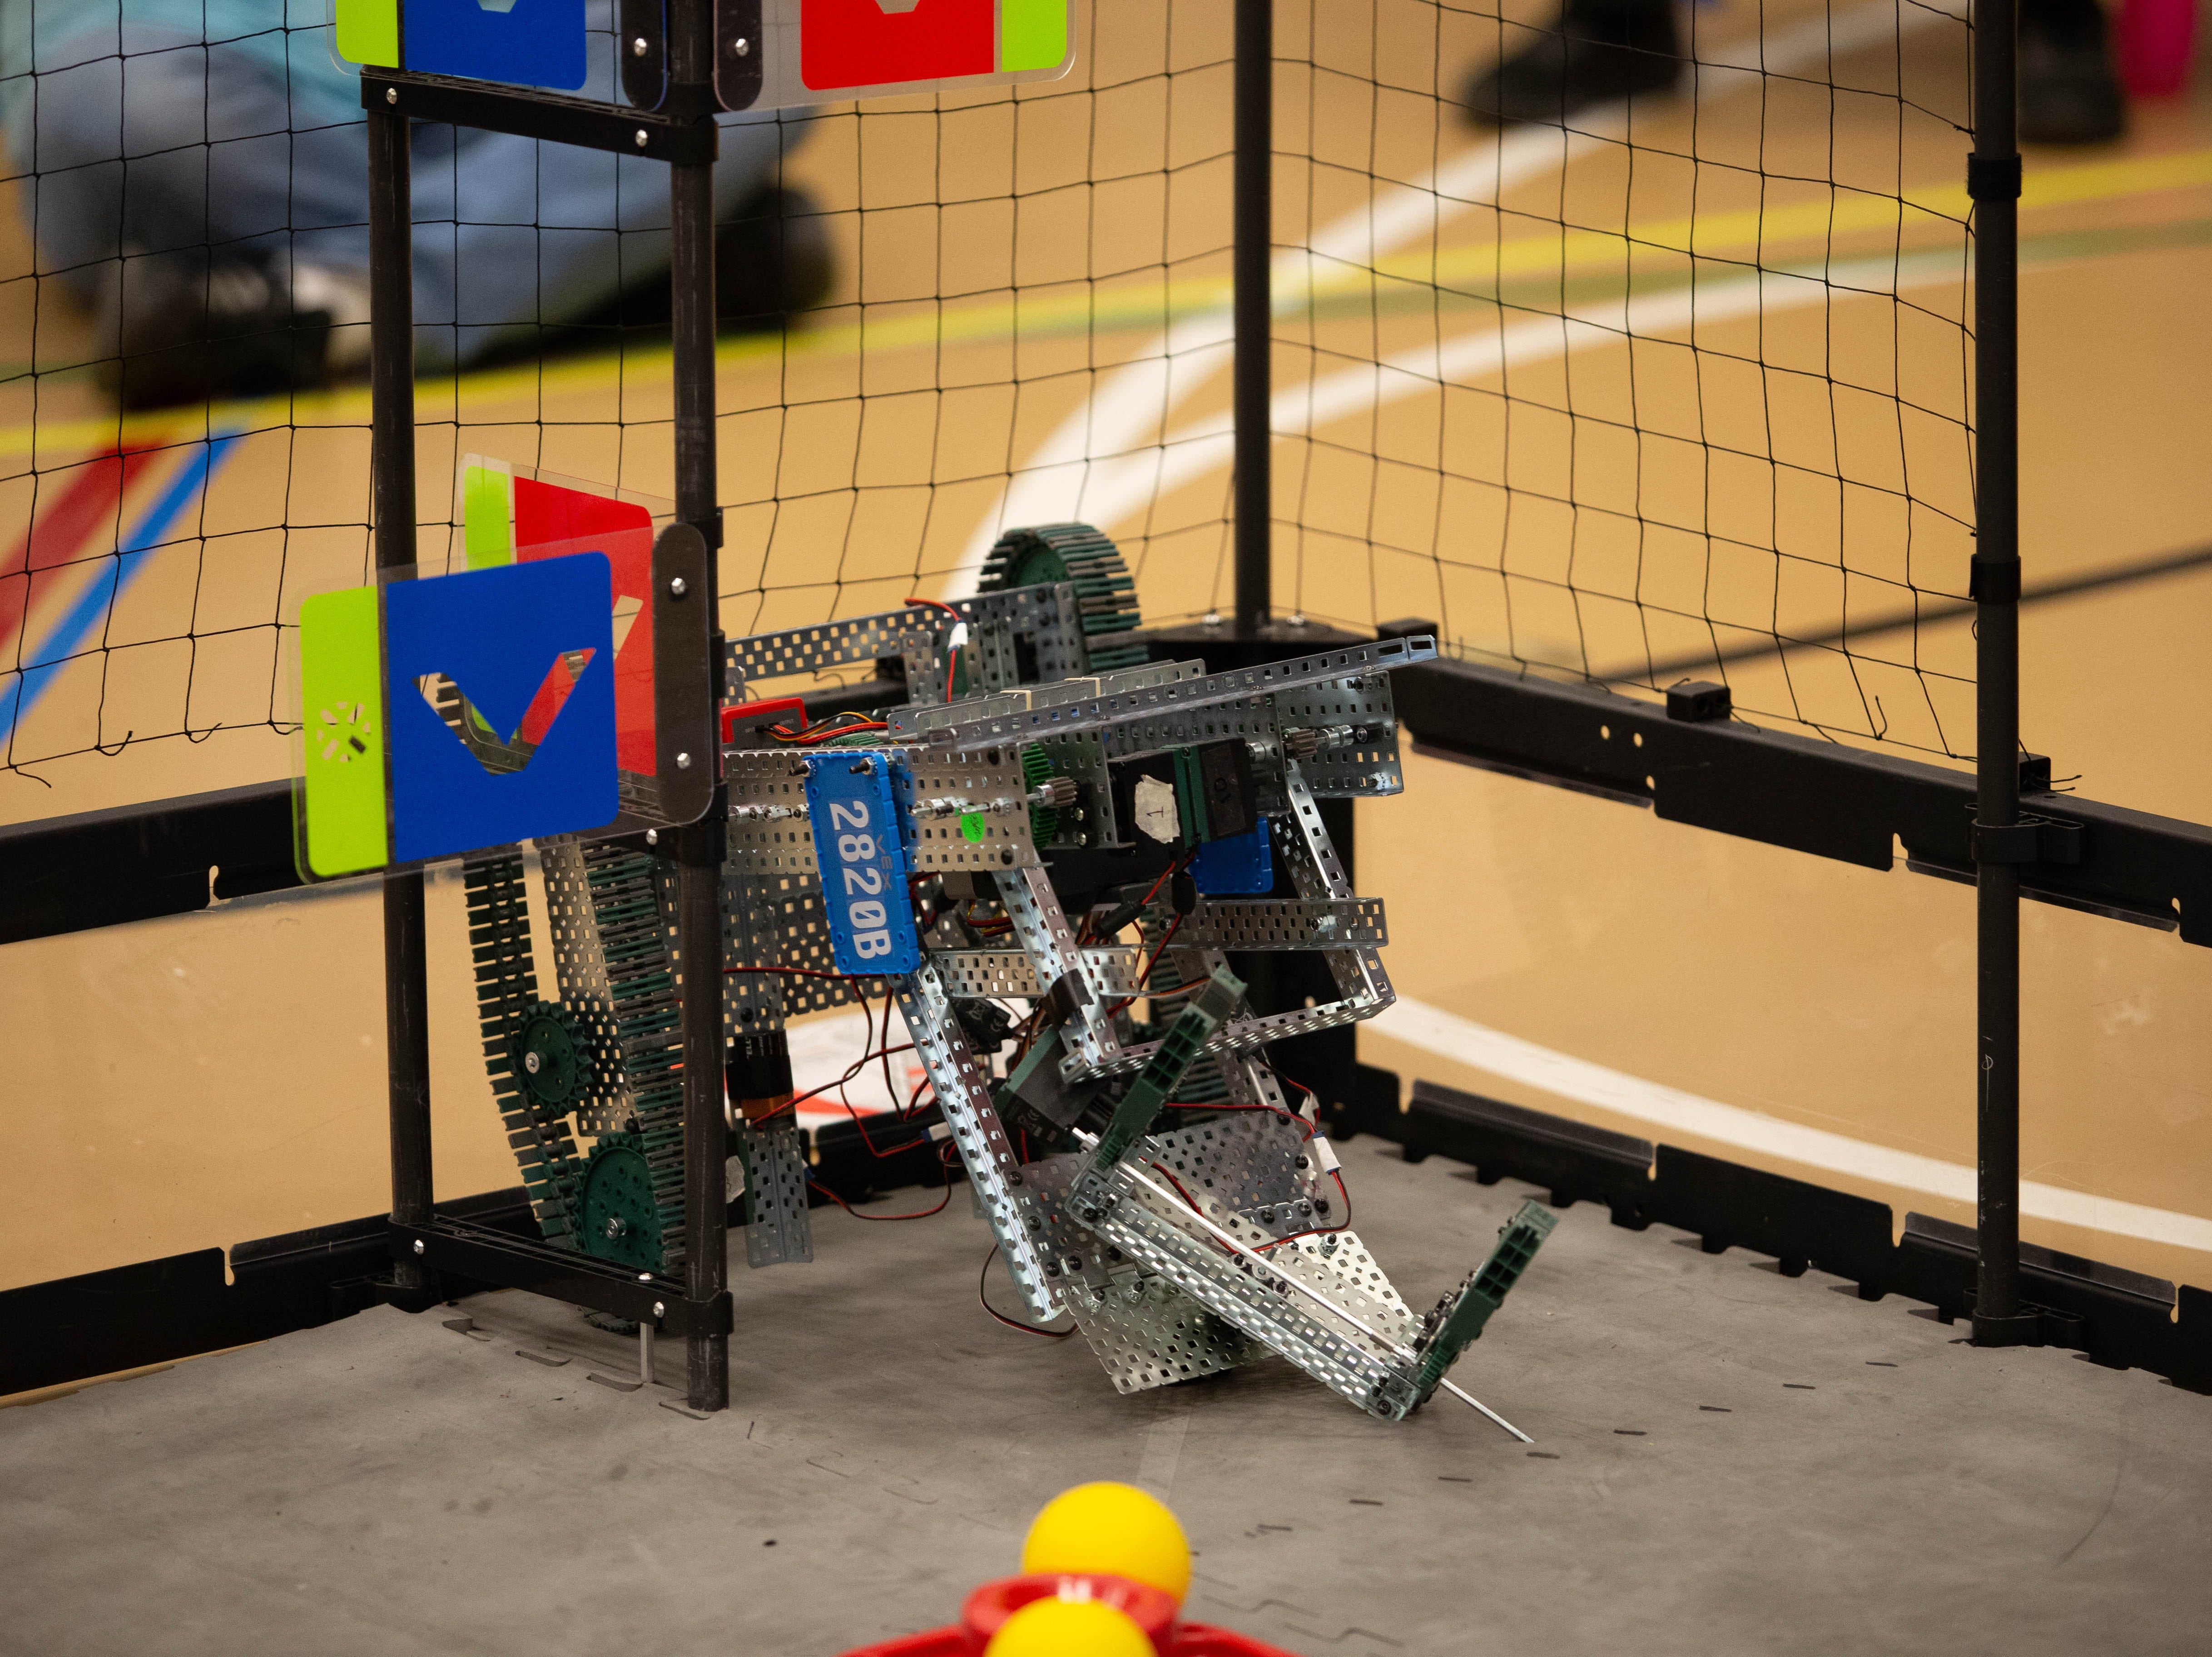 The Hawk Nation robot gets stuck on a barrier during the autonomous part of the VEX Robotics competition for elementary, middle and high school students, held on the NMSU campus on February 16, 2019.